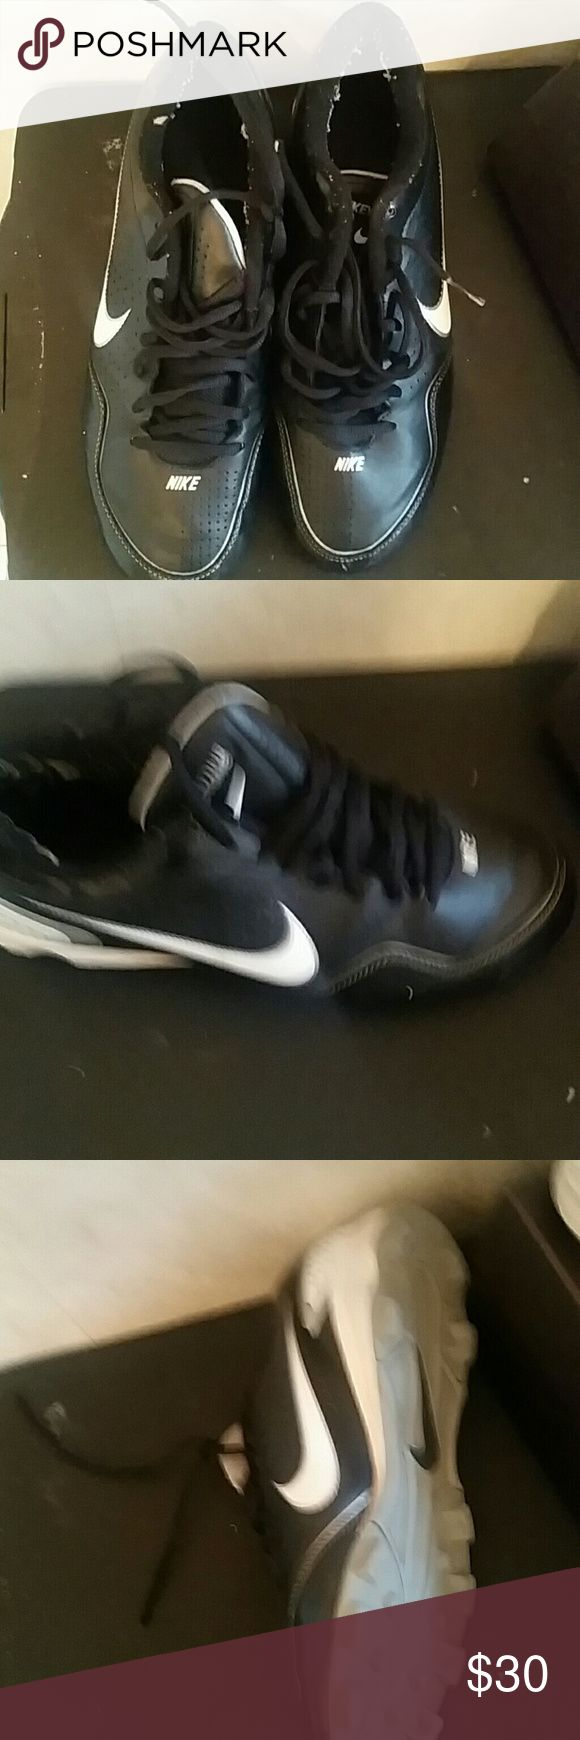 Nike cleats Men's Nike cleats only worn a few times before my son quit baseball lol Nike Shoes Athletic Shoes